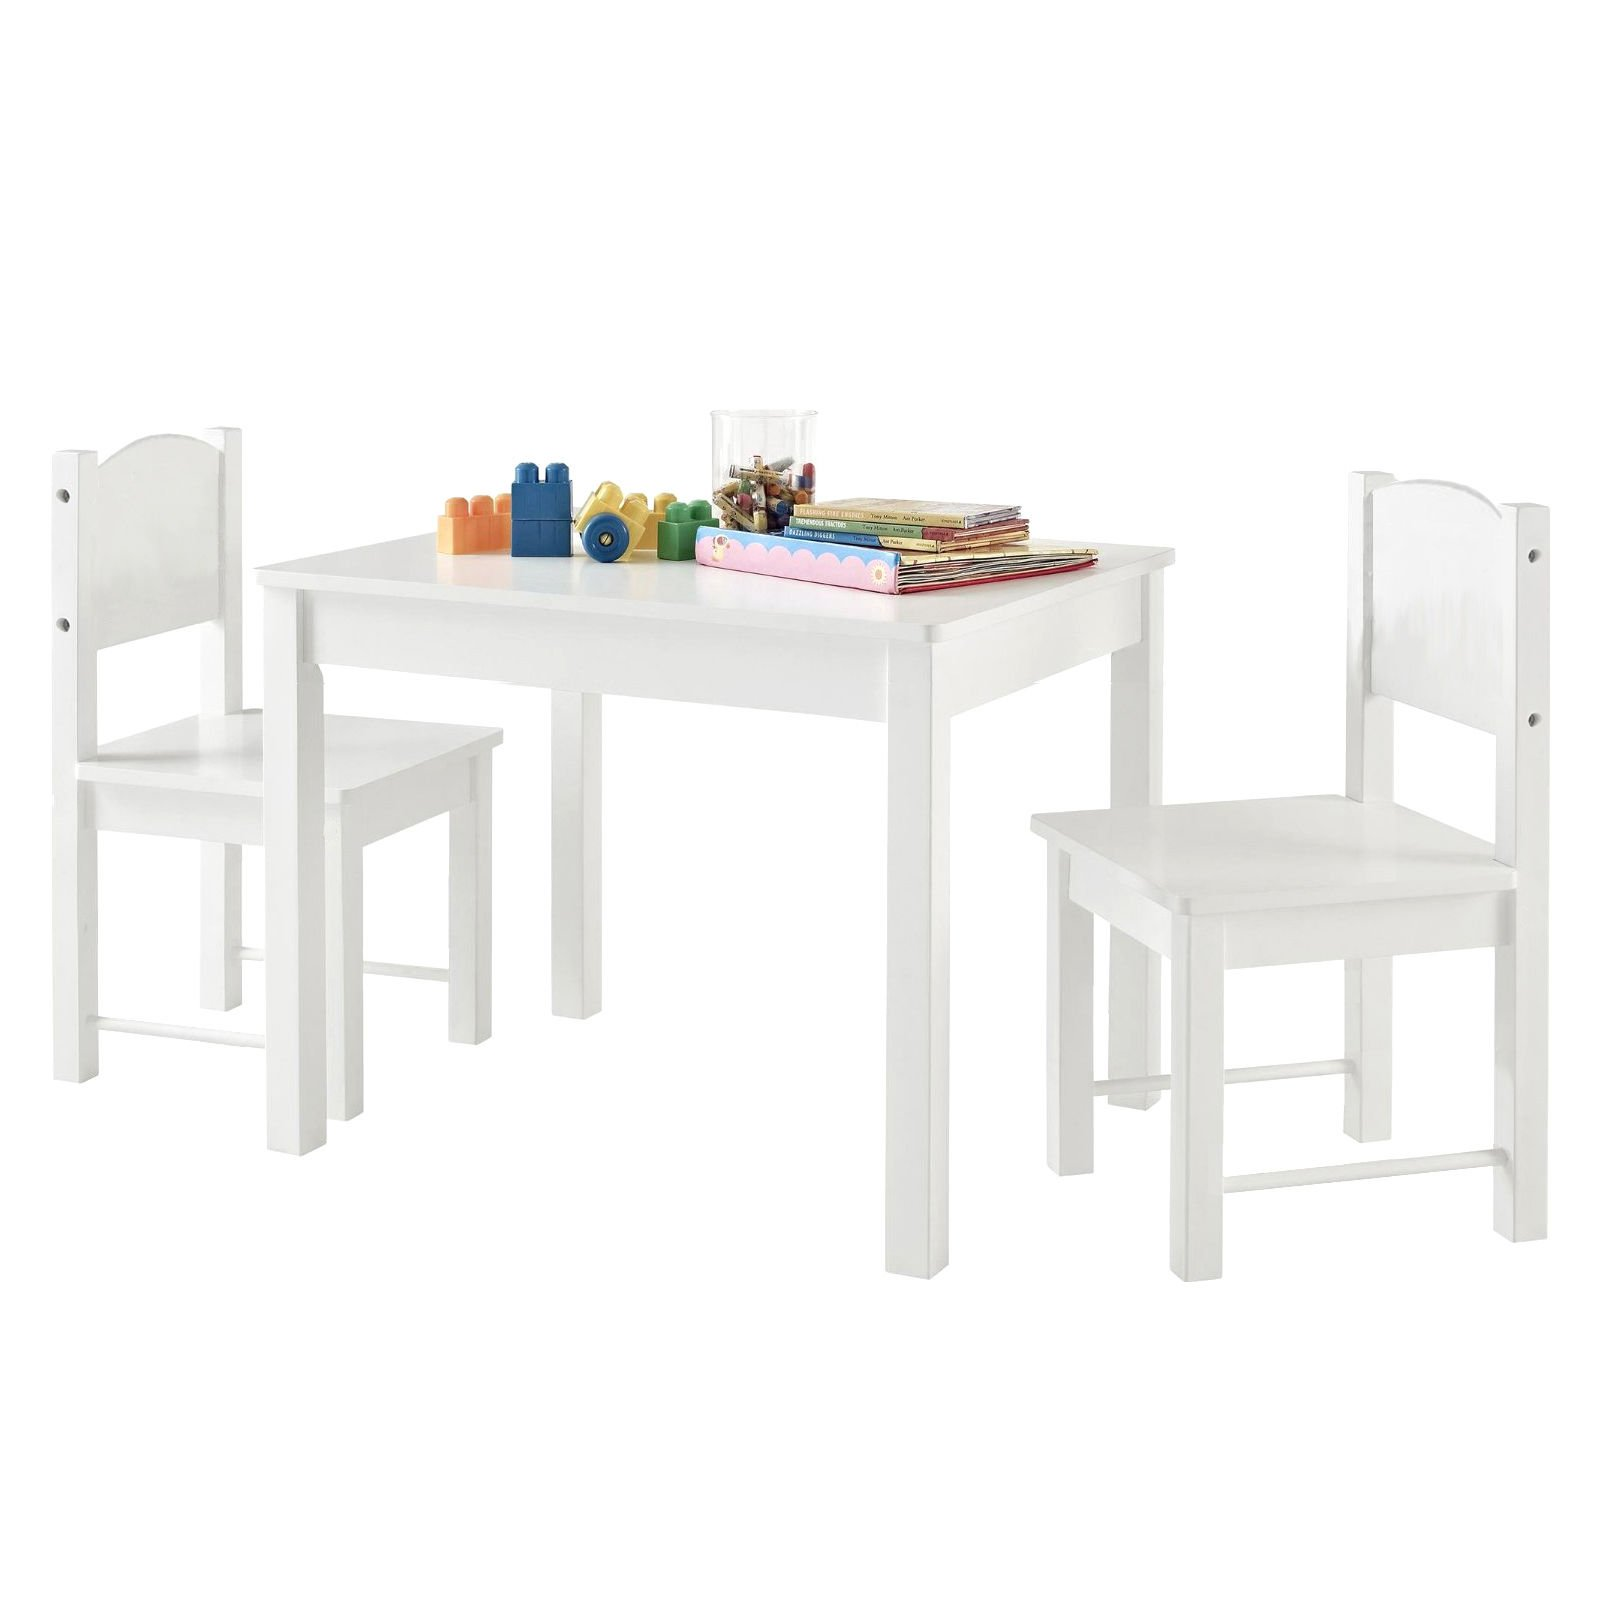 Kid's Table and 2 chairs Set Solid Hard Wood sturdy child table and chairs White